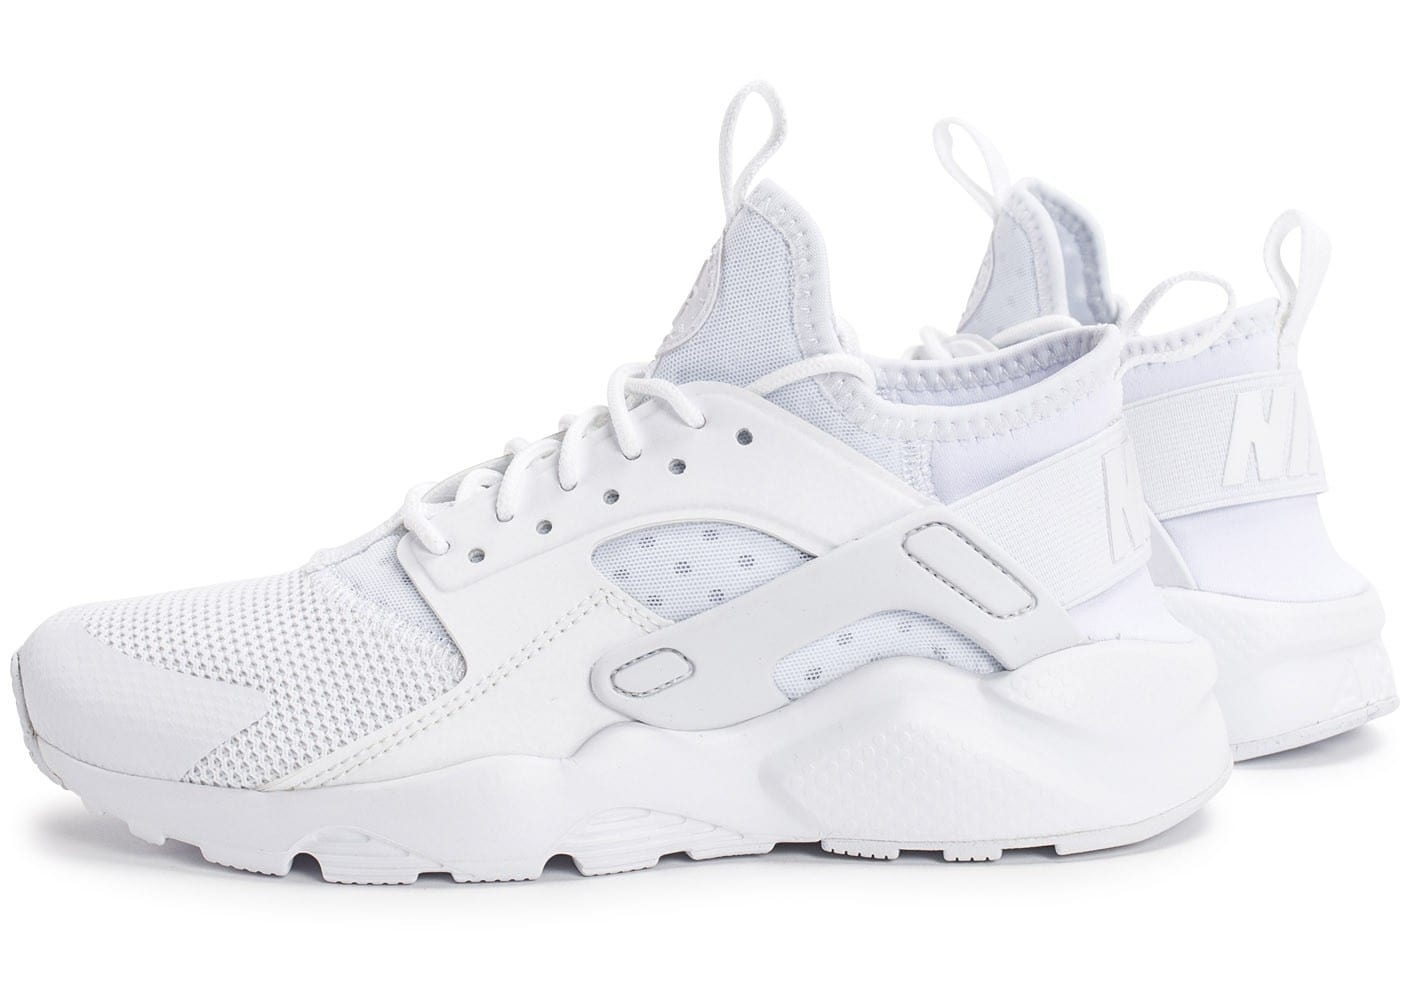 Chaussures Cool Nike Huarache Baskets Run Ultra Junior Blanche Air 4vPw0